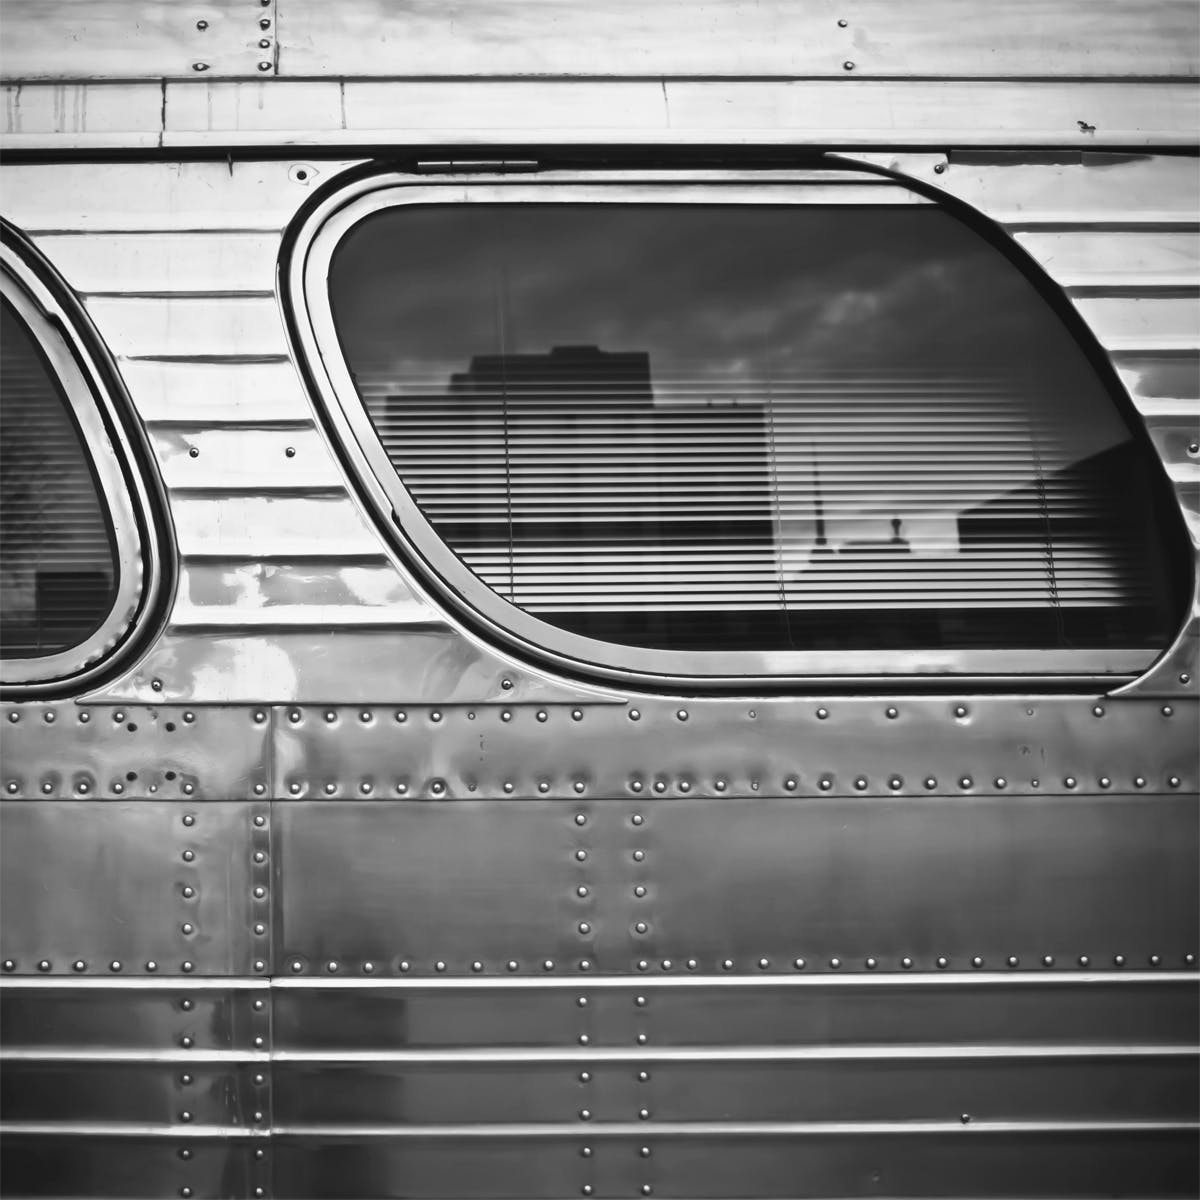 From Freedom Rides to Ferguson: Narratives of Nonviolence in the American Civil Rights Movement